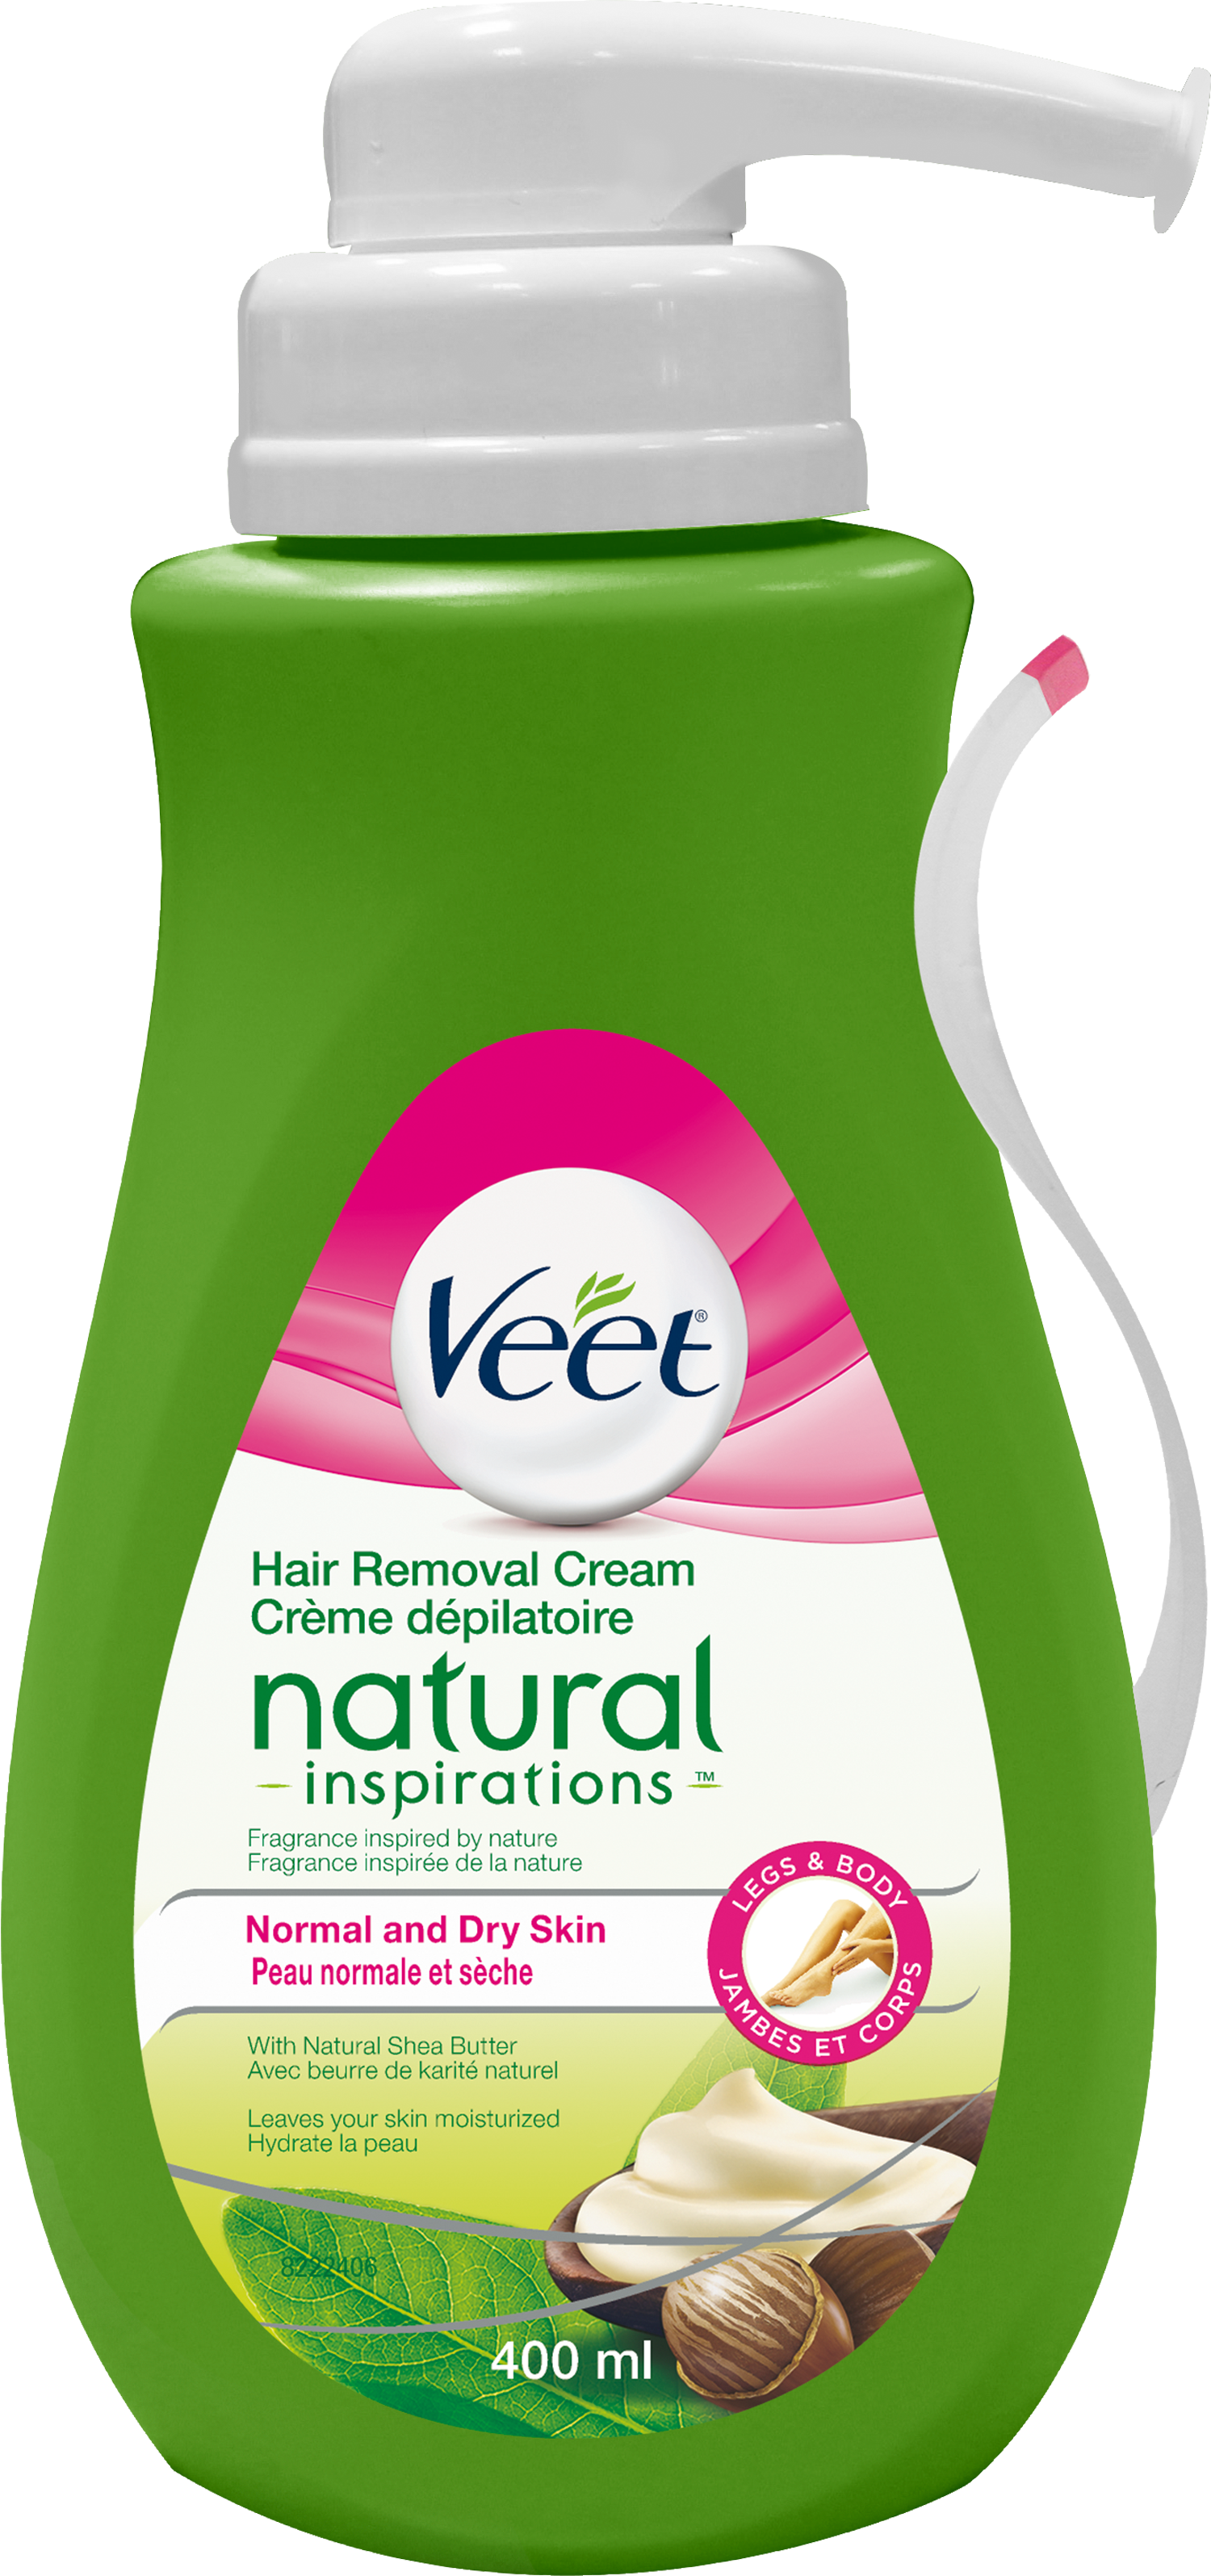 VEET Natural Inspirations Hair Removal Cream  Normal  Dry Skin pump Canada Photo